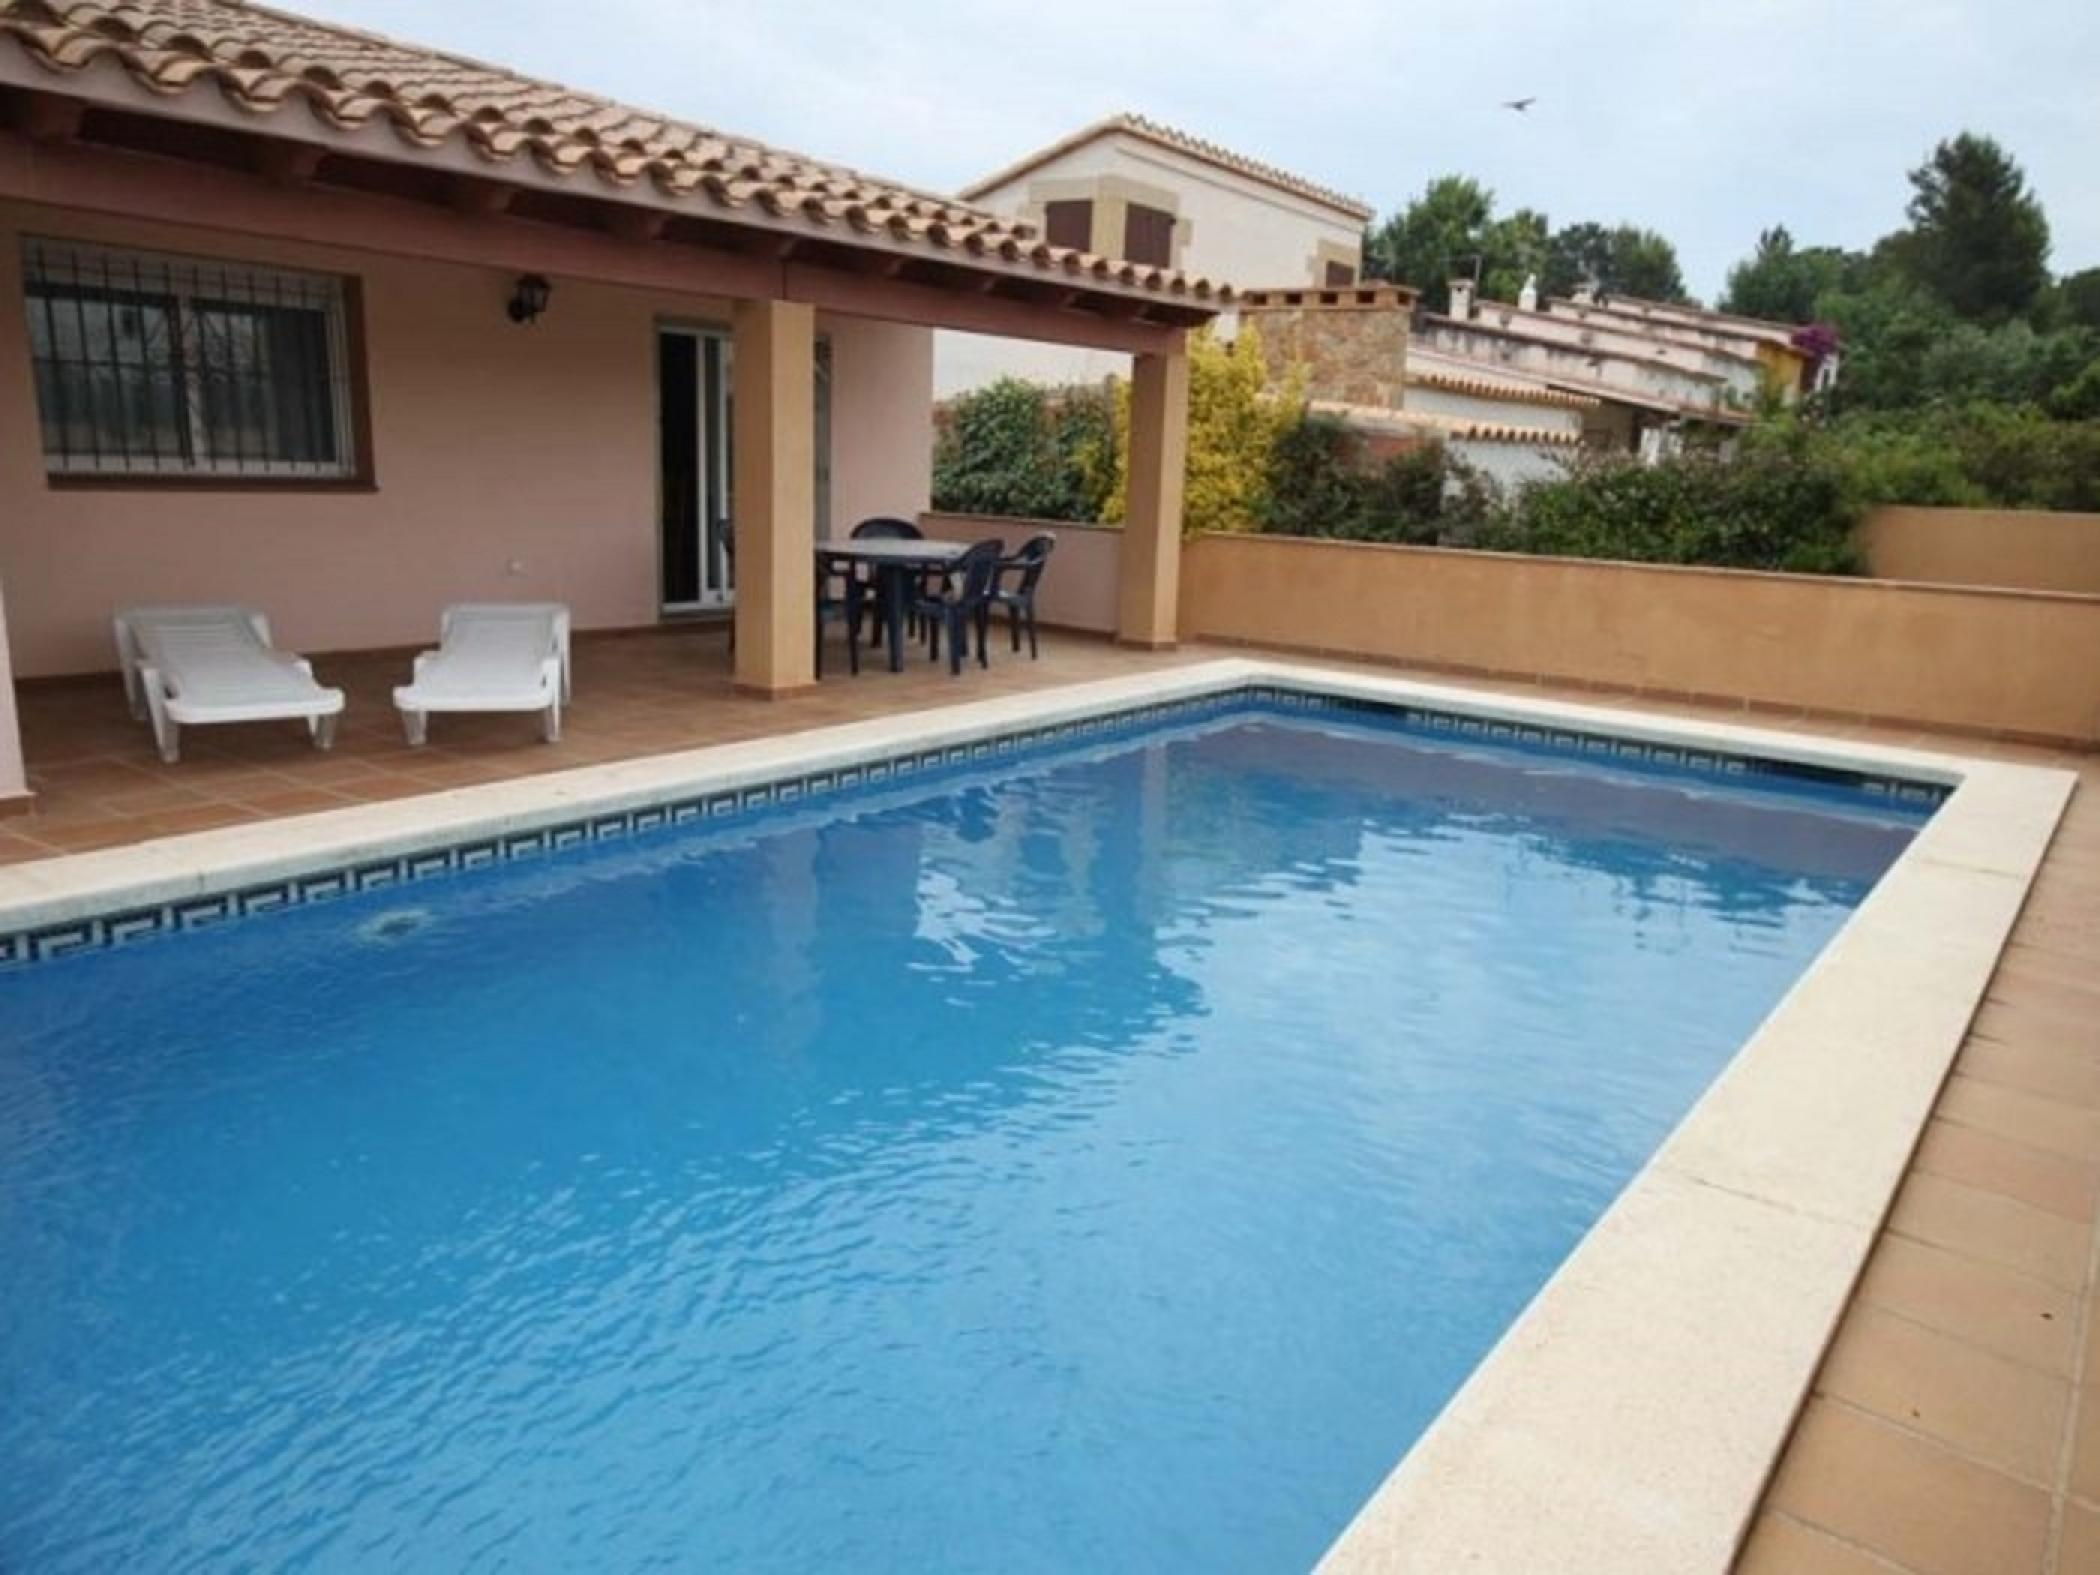 Rent Villa with Swimming pool in l'Escala - RICARDEL 20 - 1